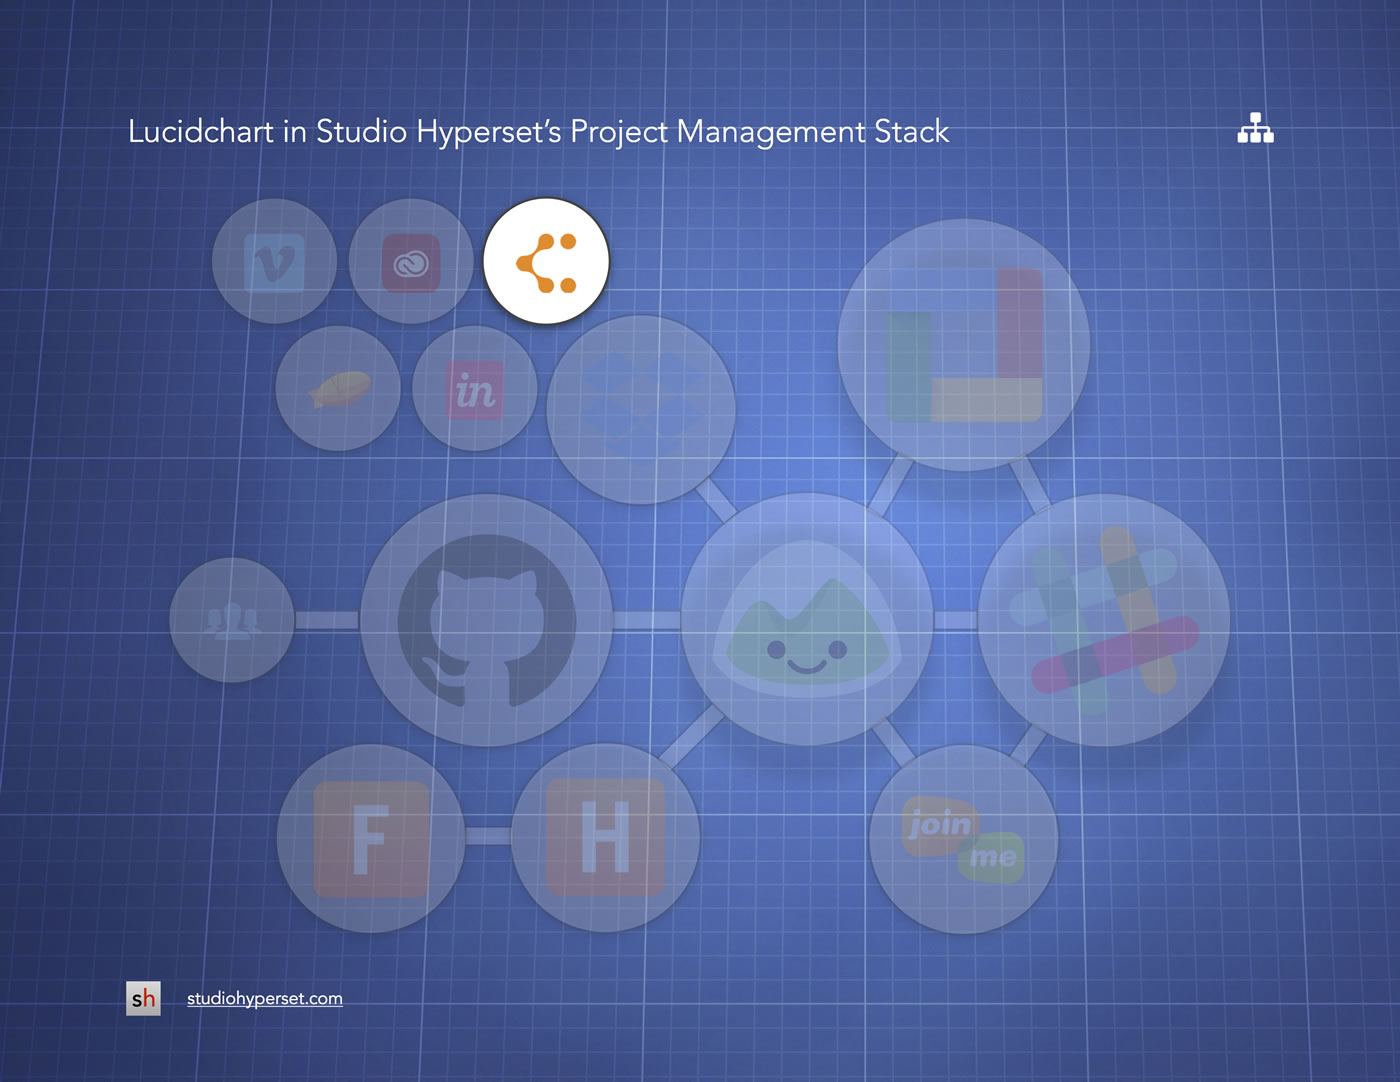 lucidchart in studeo hyperset's project management stack